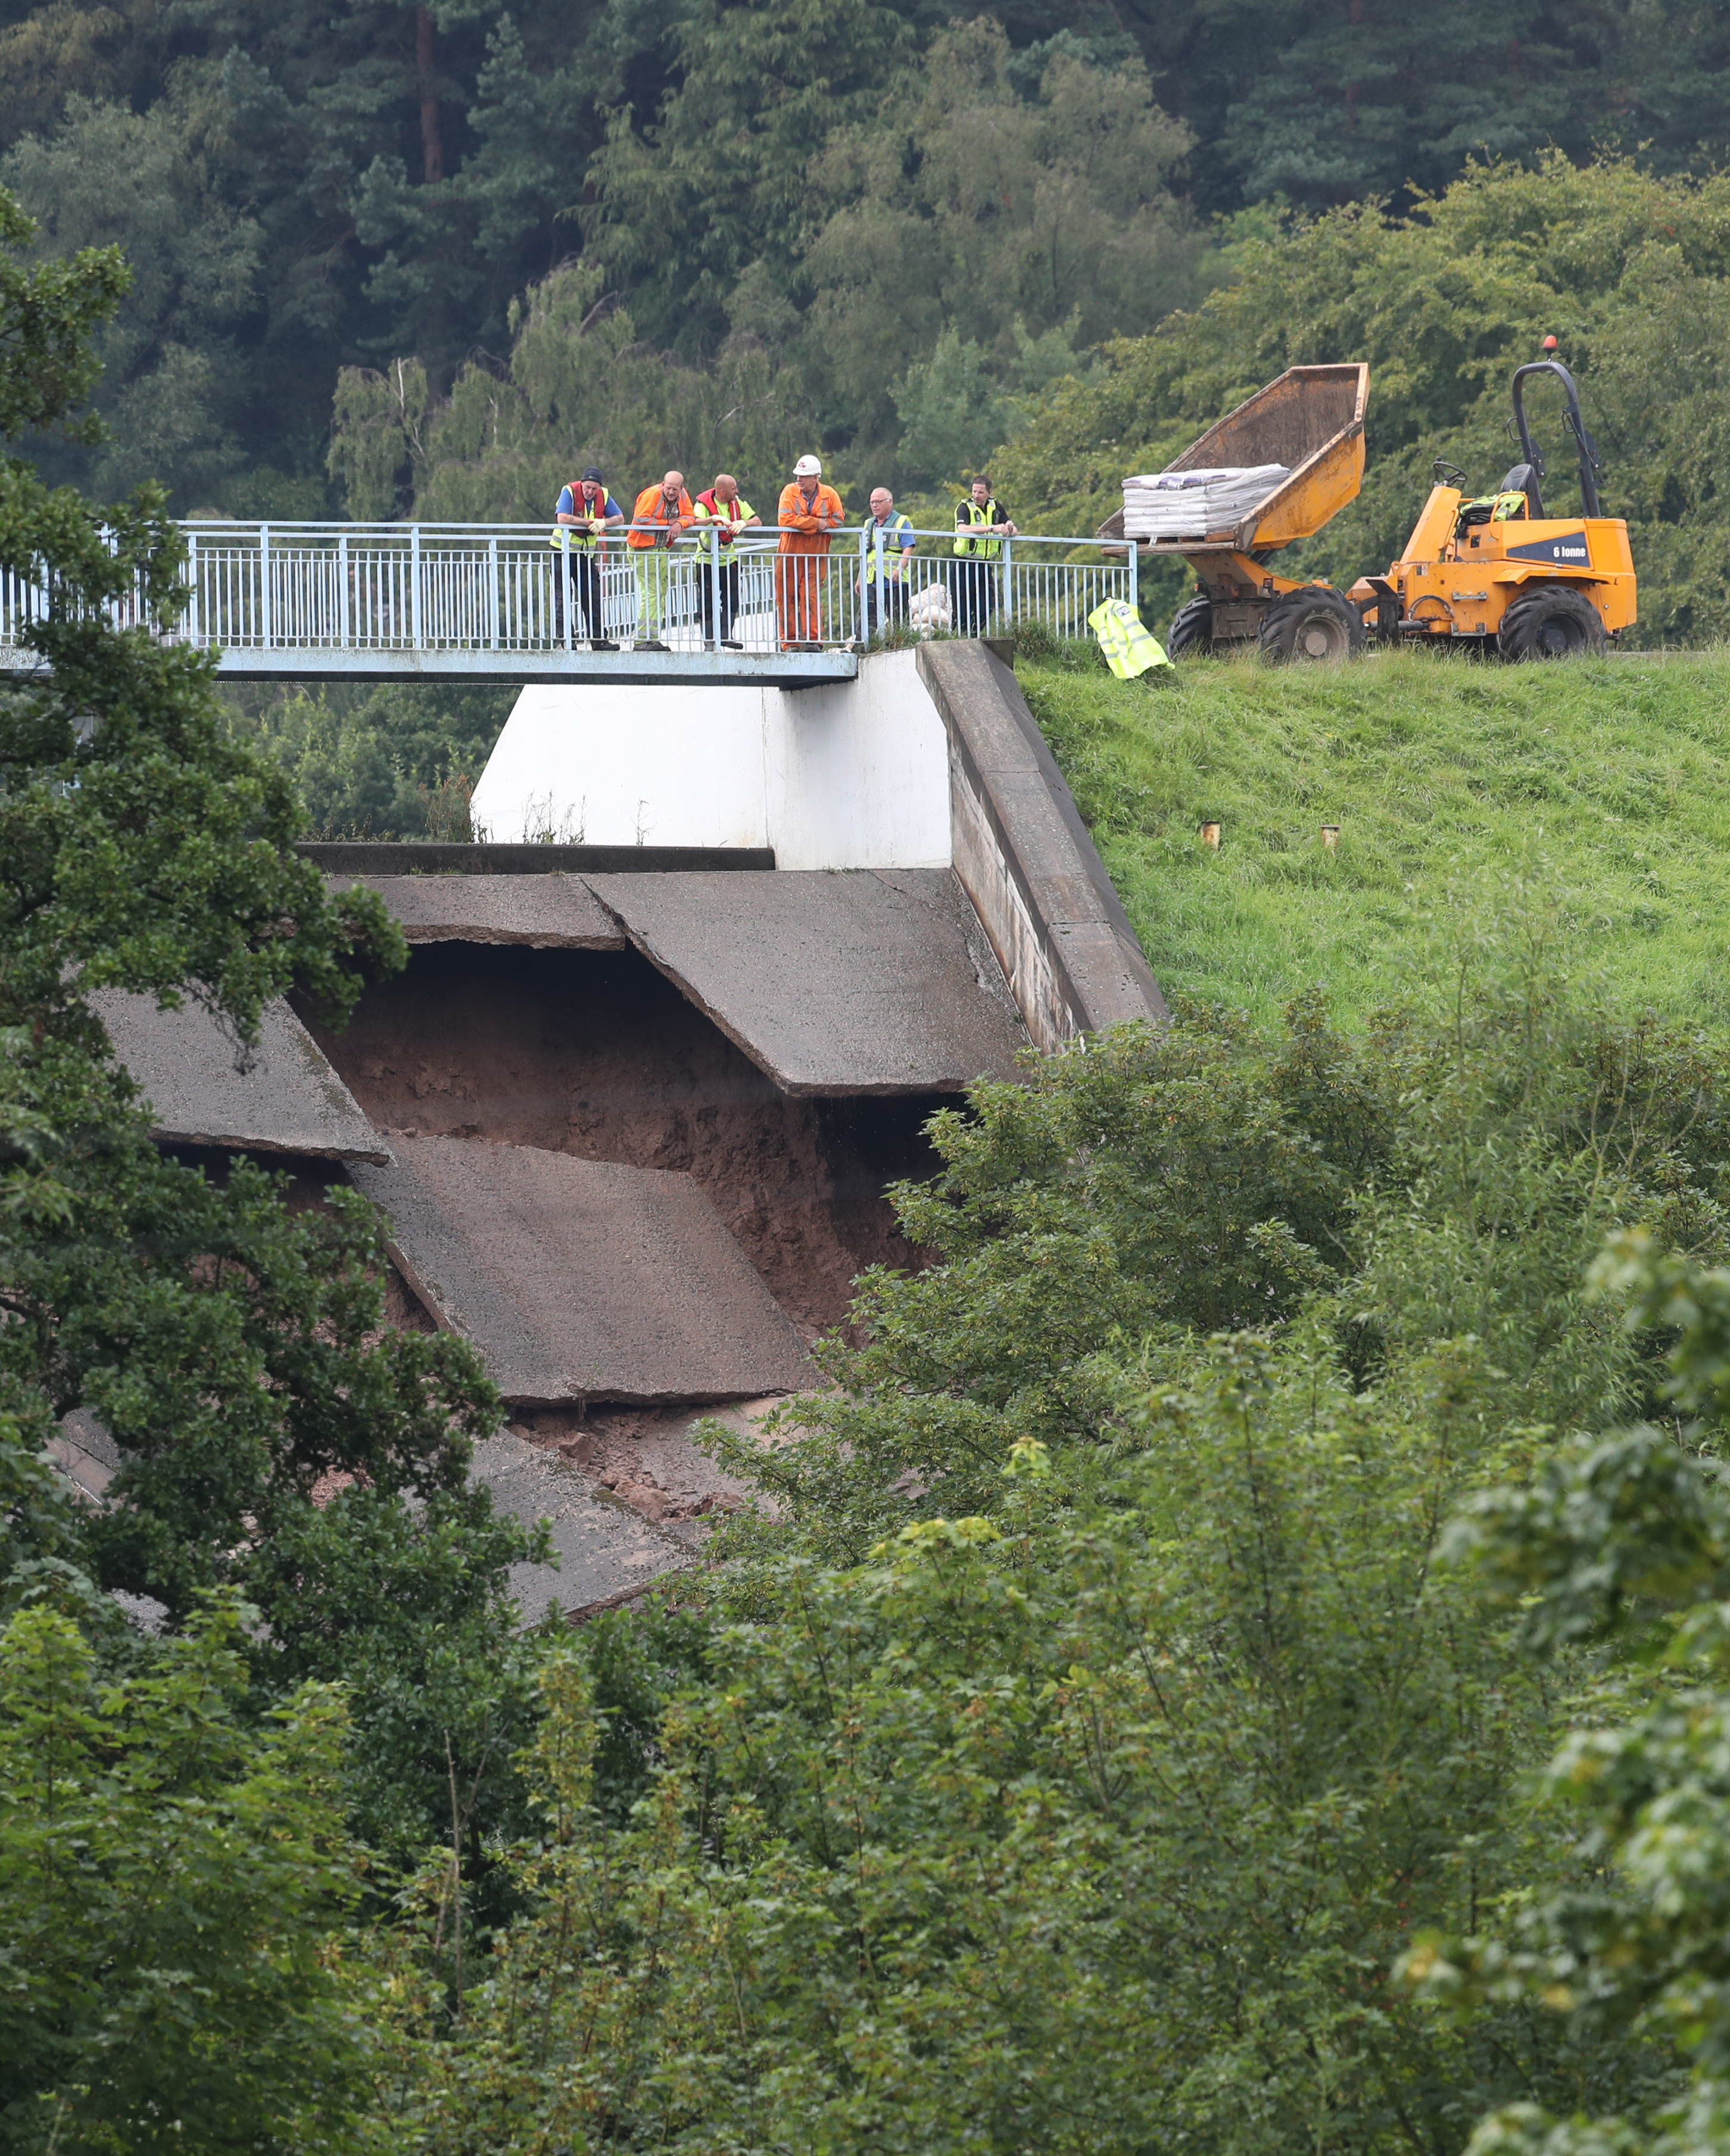 A team of men look at the damage to the wall of Toddbrook Reservoir near the village of Whaley Bridge, Cheshire, after it was damaged in heavy rainfall.